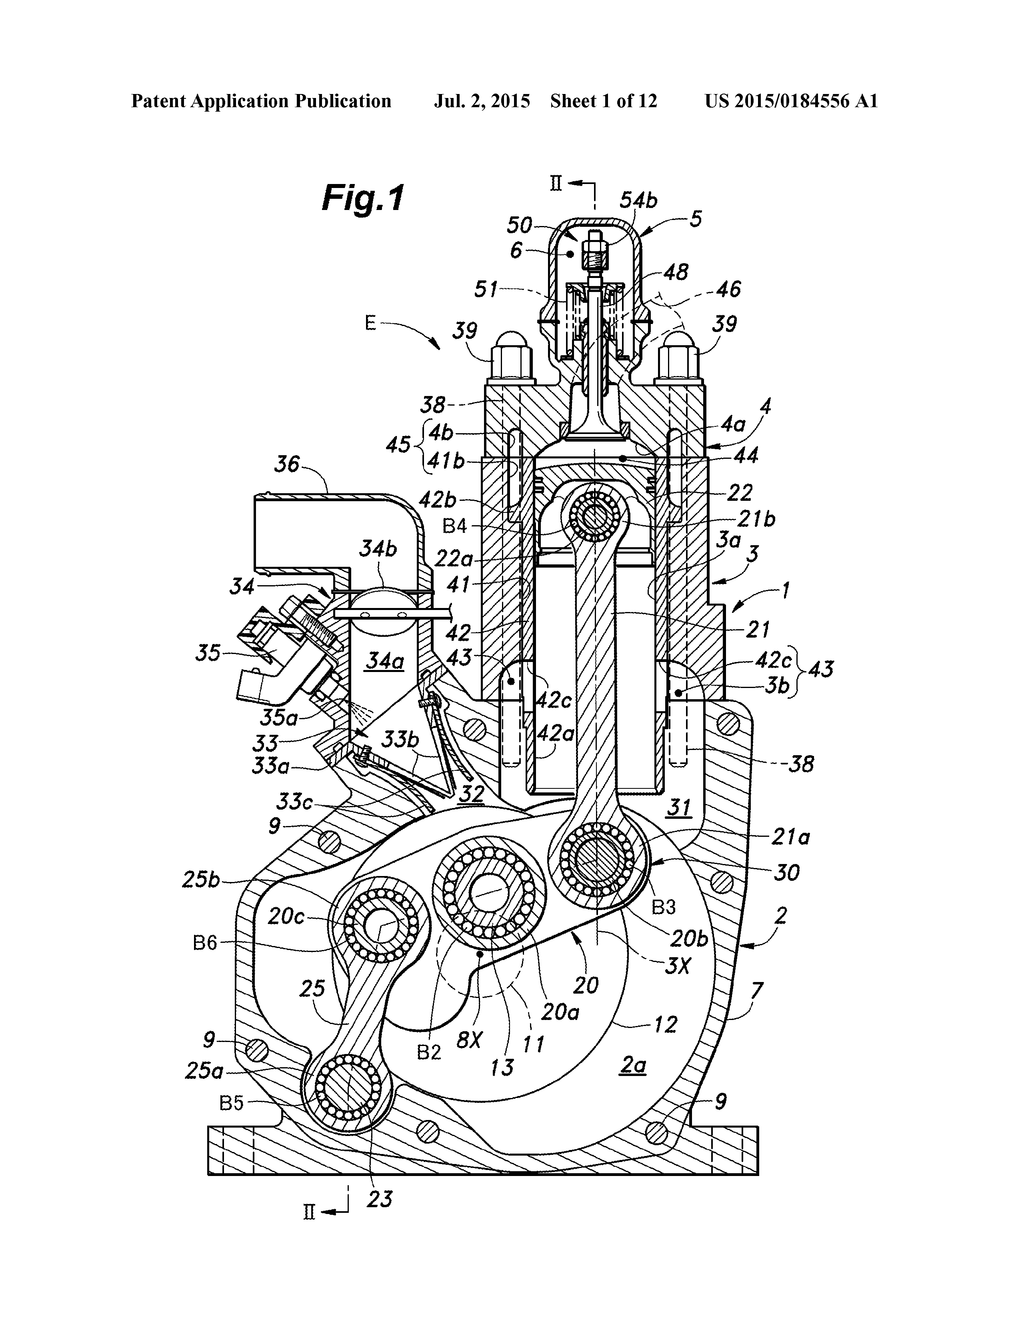 variable valve actuating mechanism for ohv engine diagram rh patentsencyclopedia com Ford 4.0 SOHC Engine Diagram ohc engine diagram